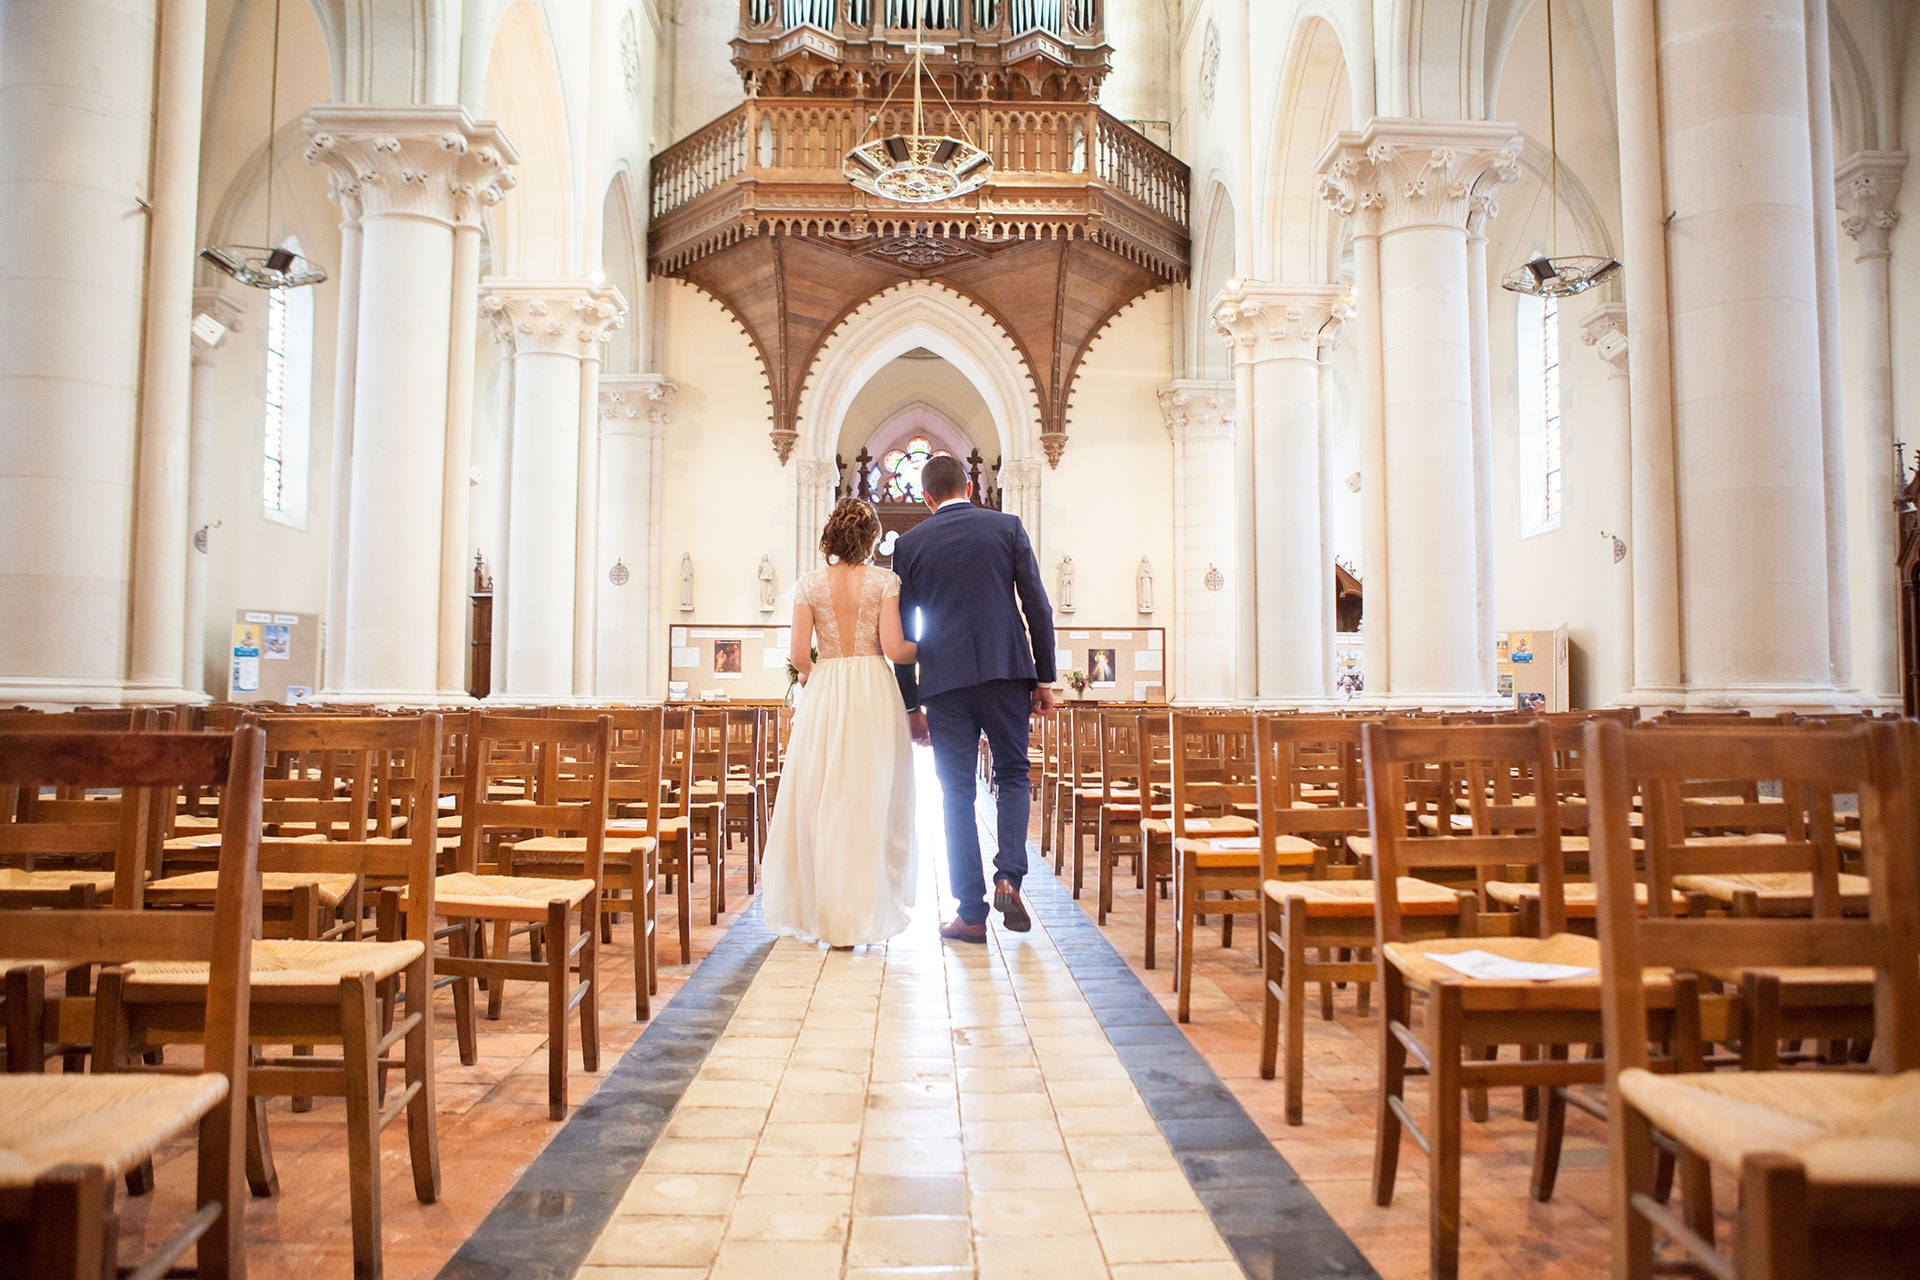 particuliers-evenements-mariages-oui-clementine&alexandre-39